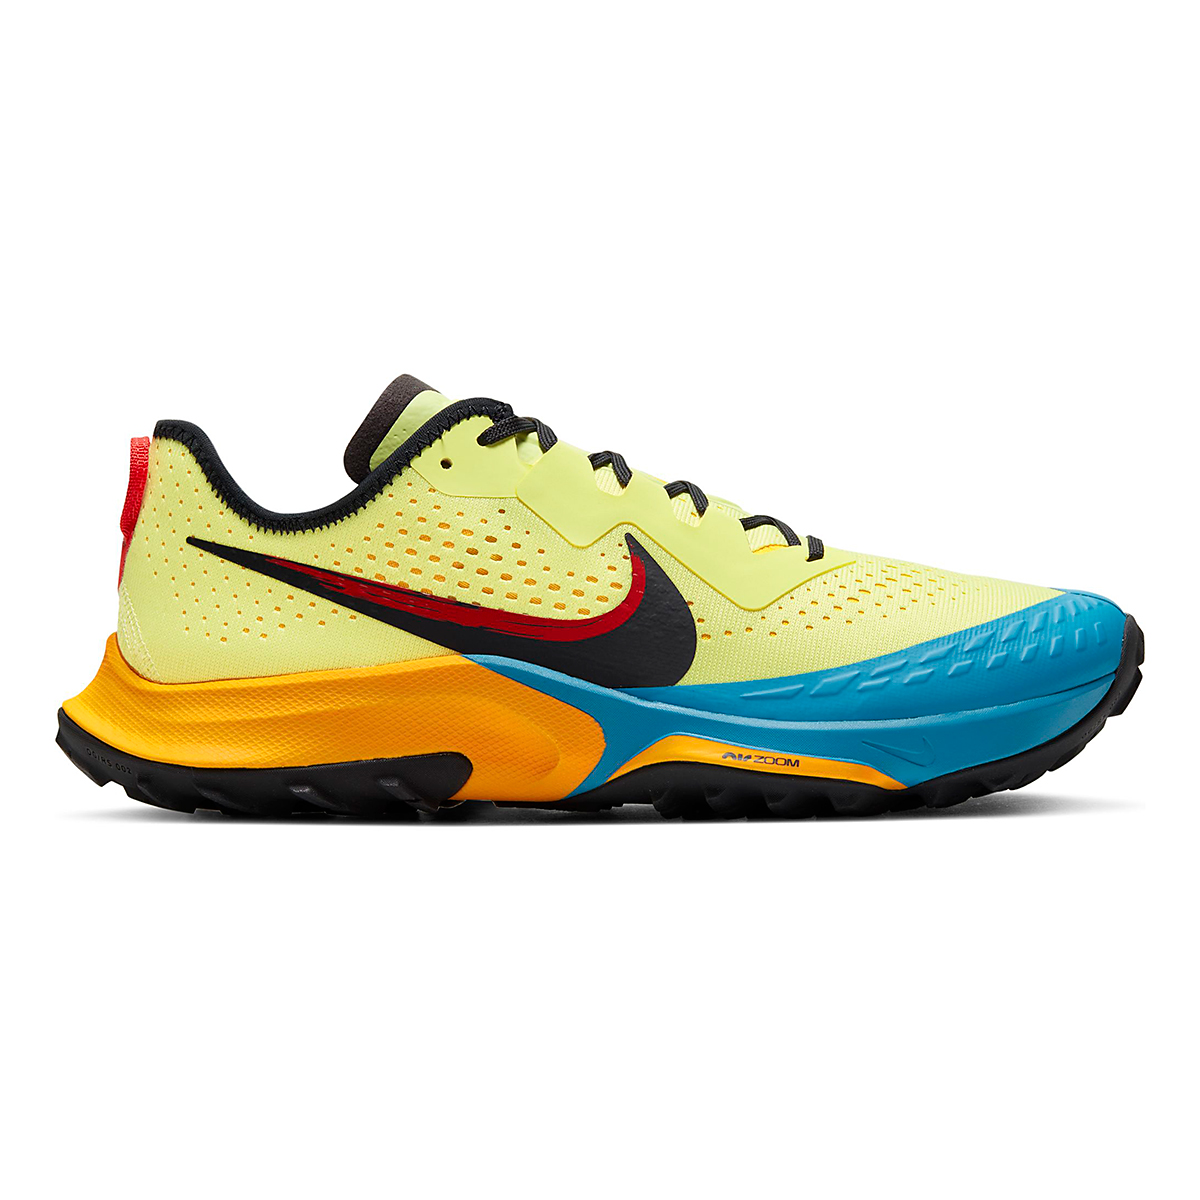 Men's Nike Air Zoom Terra Kiger 7 Trail Running Shoe - Color: Limelight/Off Noir/Laser Blue - Size: 6.5 - Width: Regular, Limelight/Off Noir/Laser Blue, large, image 1